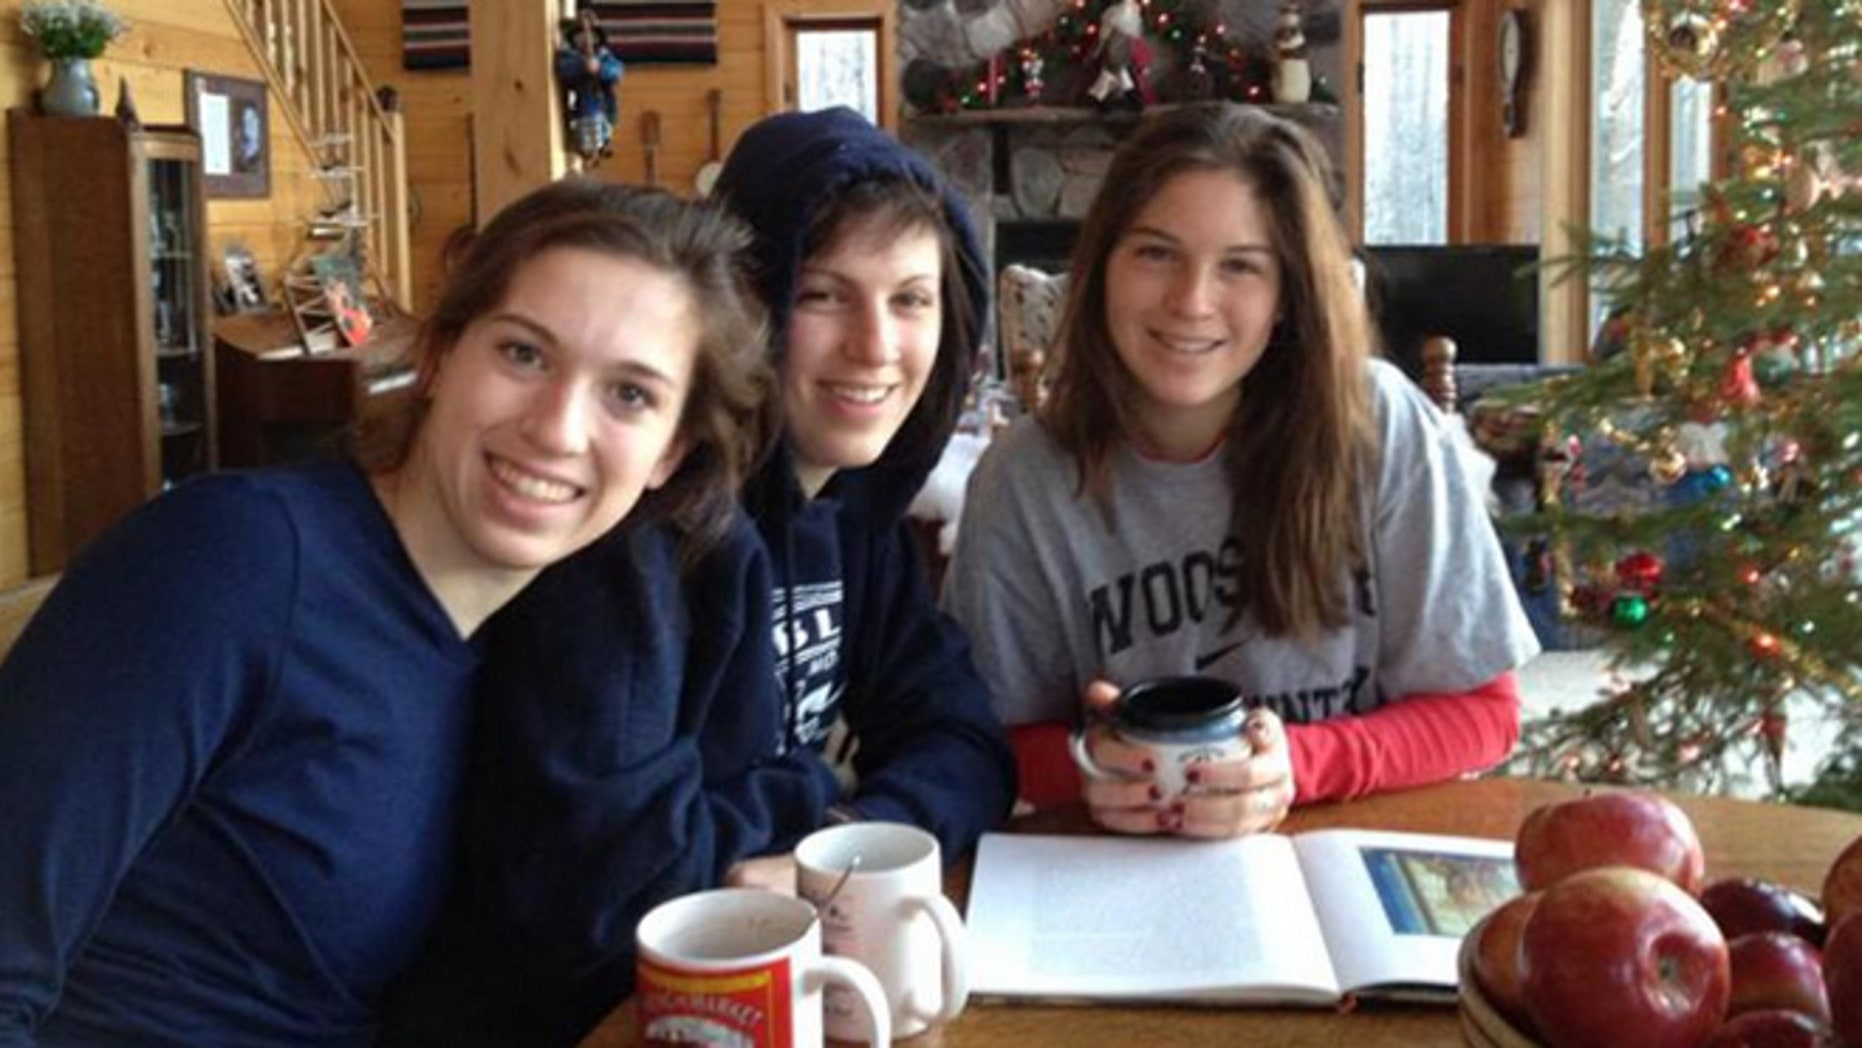 Three Midwestern sisters who disappeared during an excursion into the Wyoming wilderness on Tuesday were found alive Thursday, a search official said.